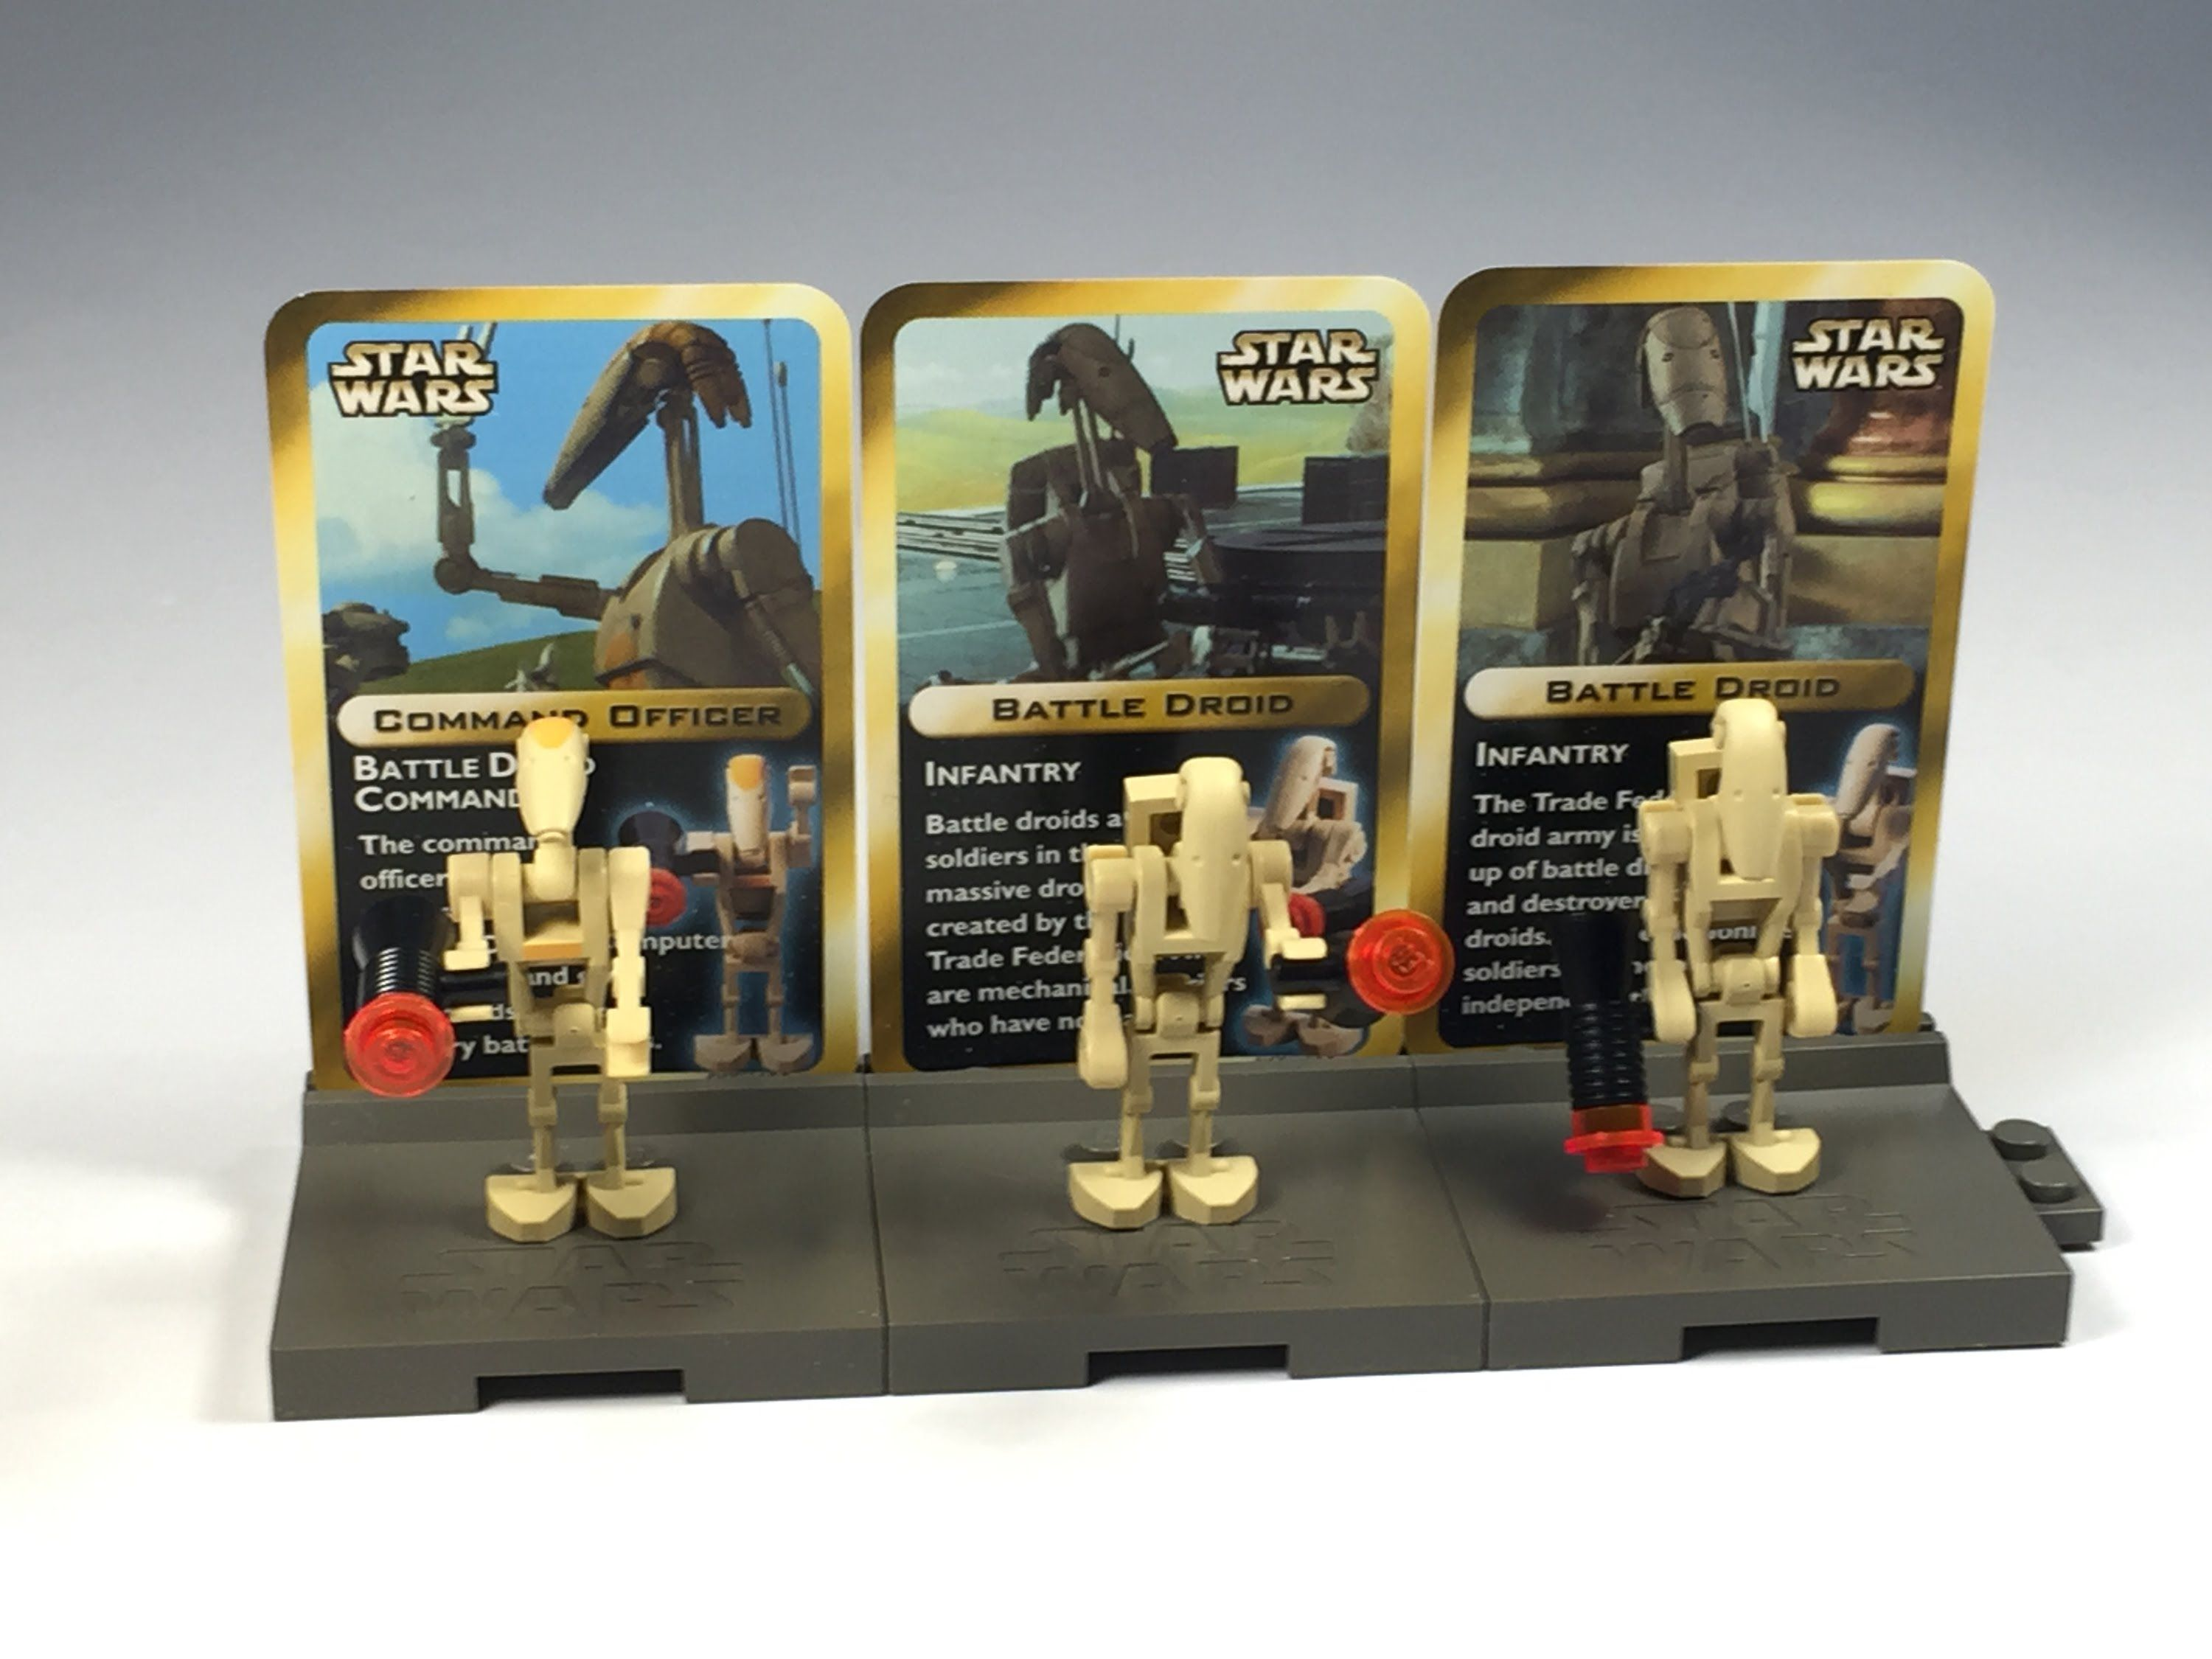 LEGO Star Wars 4 set 3343 Droid Minifigure Pack from 2000  LEGO